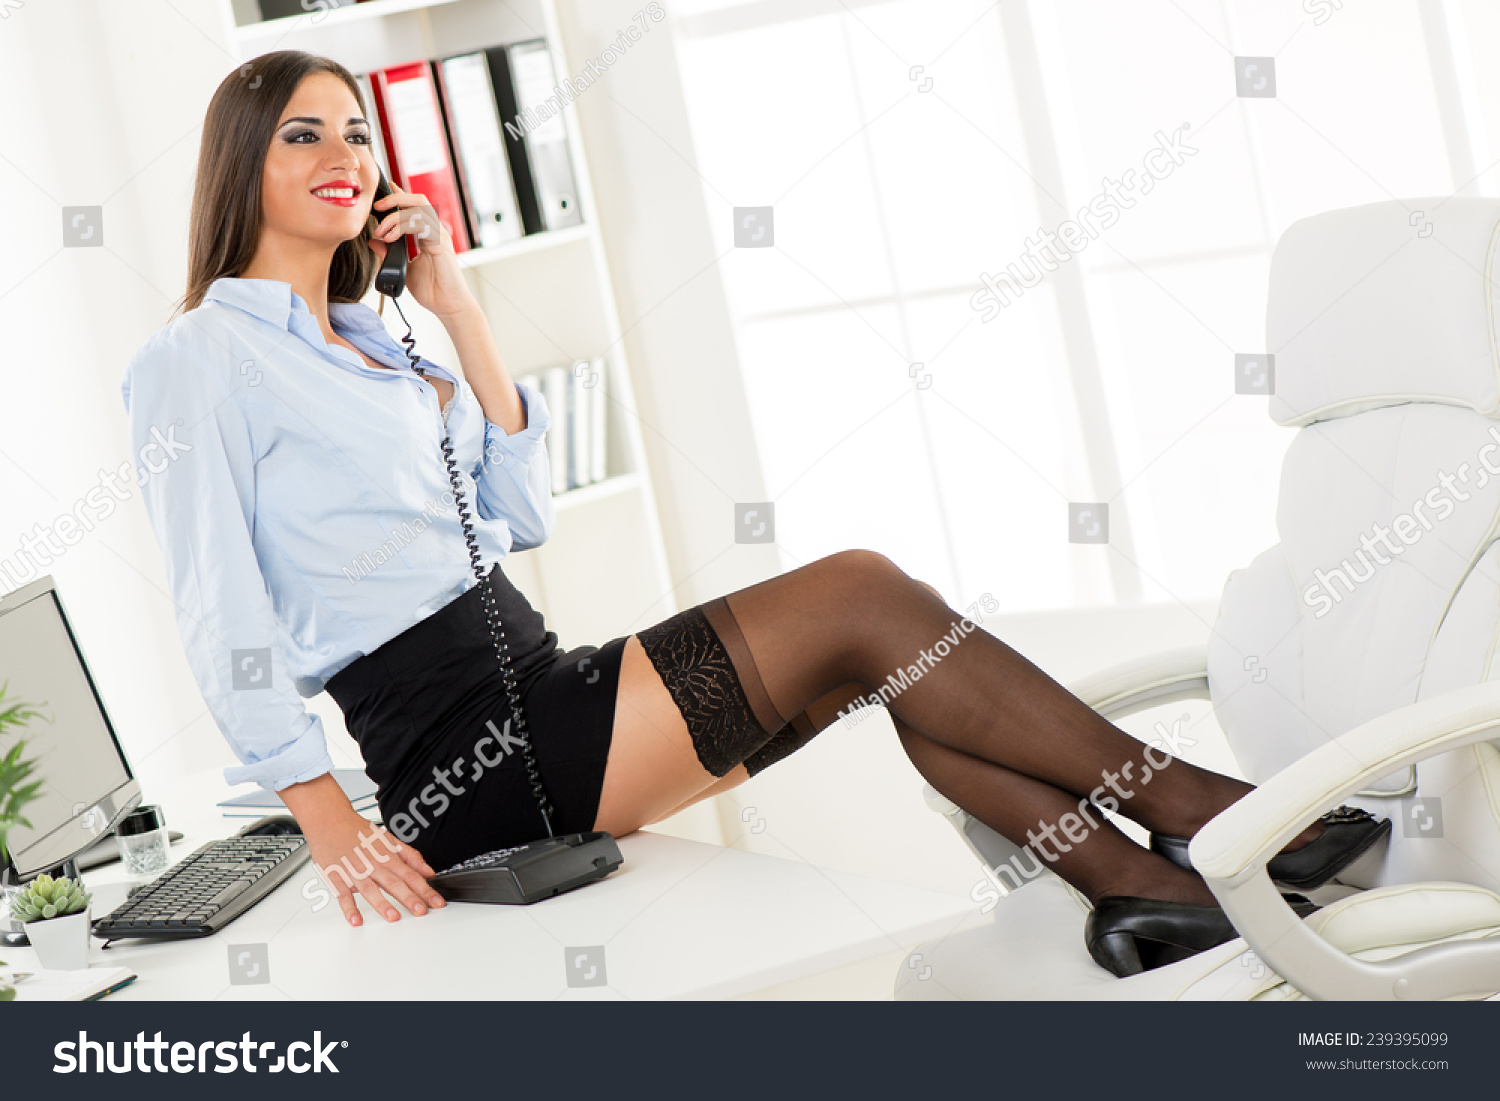 Young Pretty Businesswoman Short Skirt Sitting Stock Photo ...